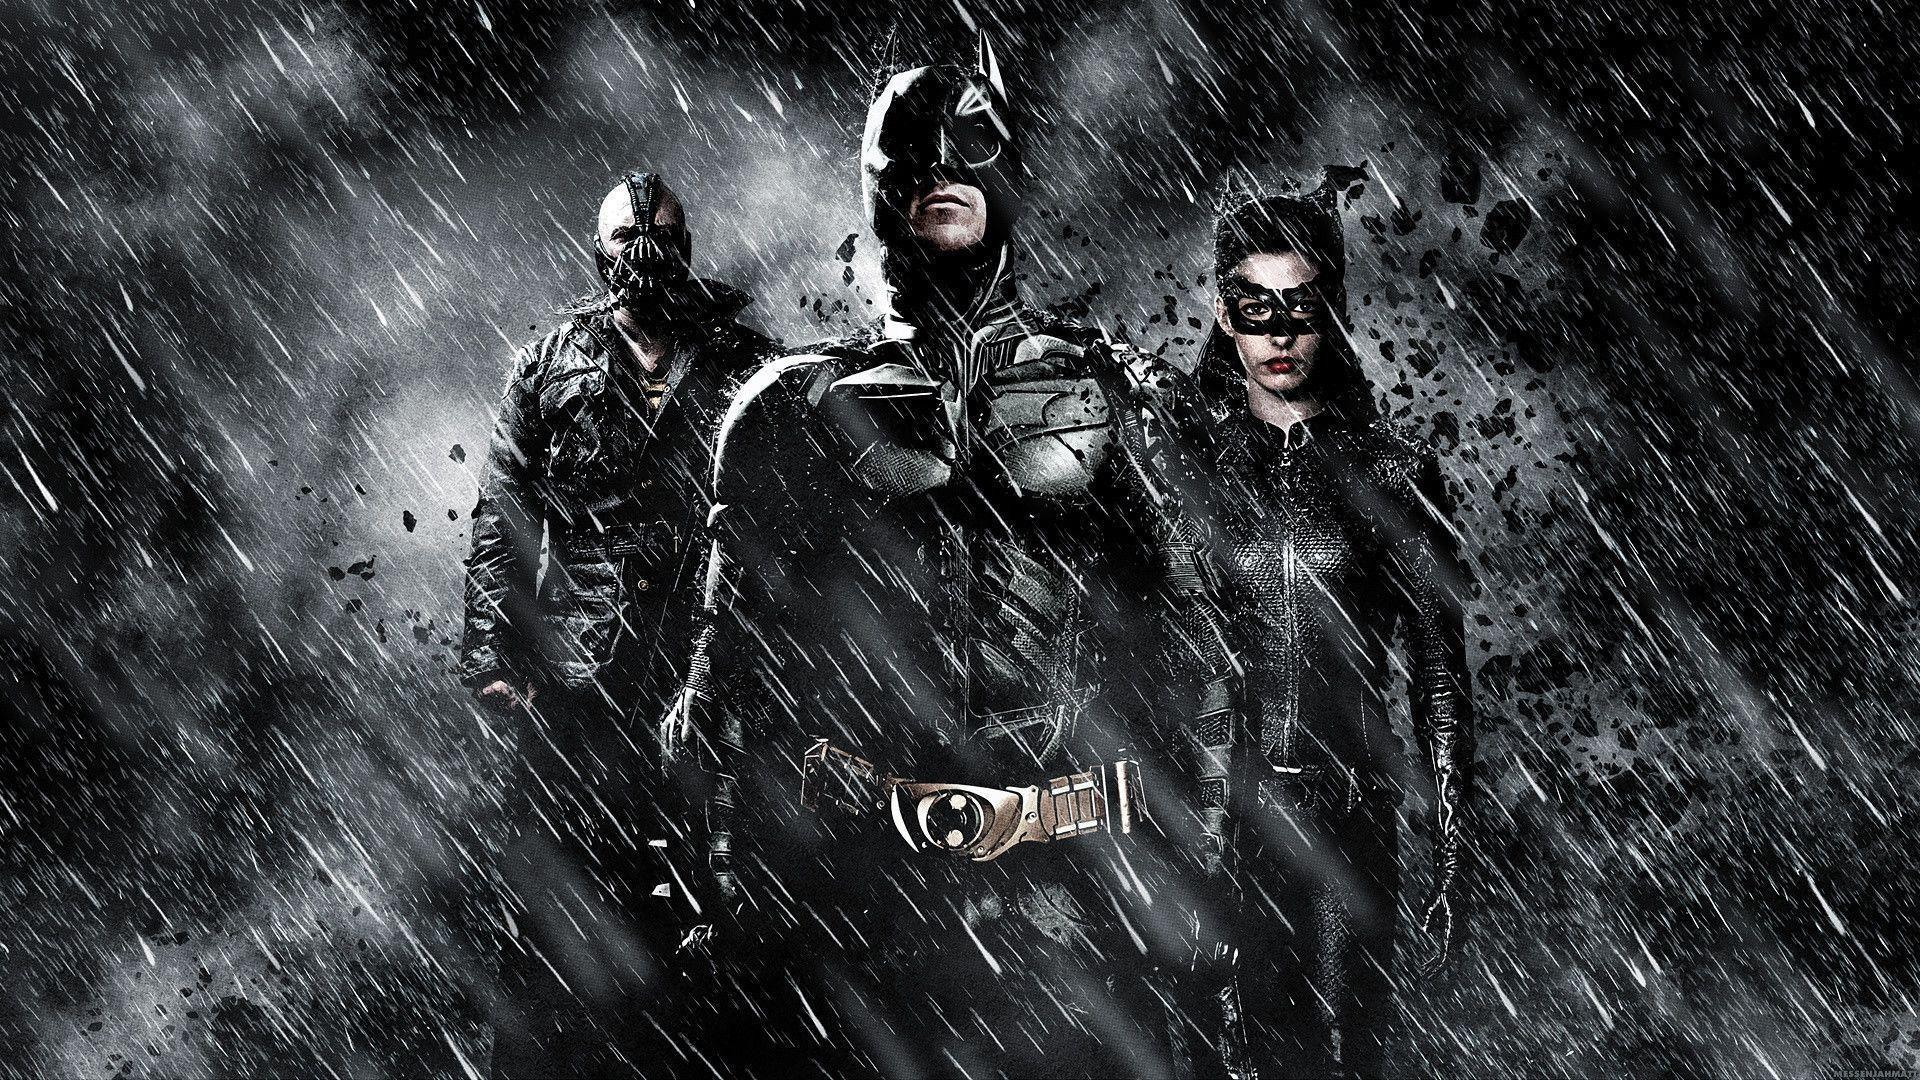 Spoiled Rotten 148: Revisiting The Dark Knight Rises